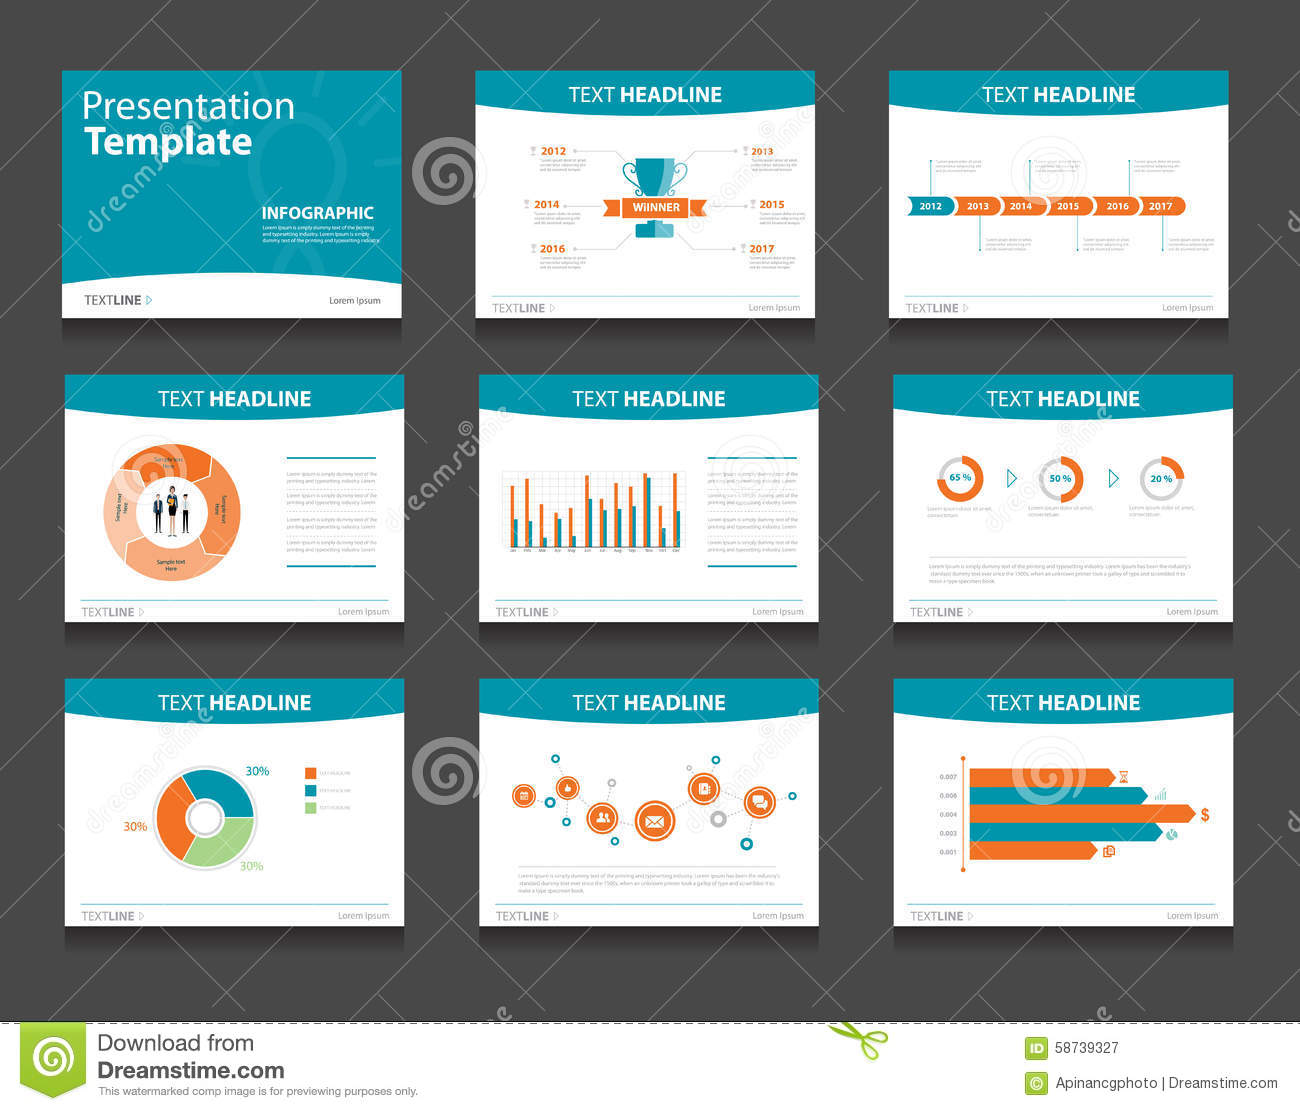 Ppt template design selol ink ppt template design toneelgroepblik Image collections